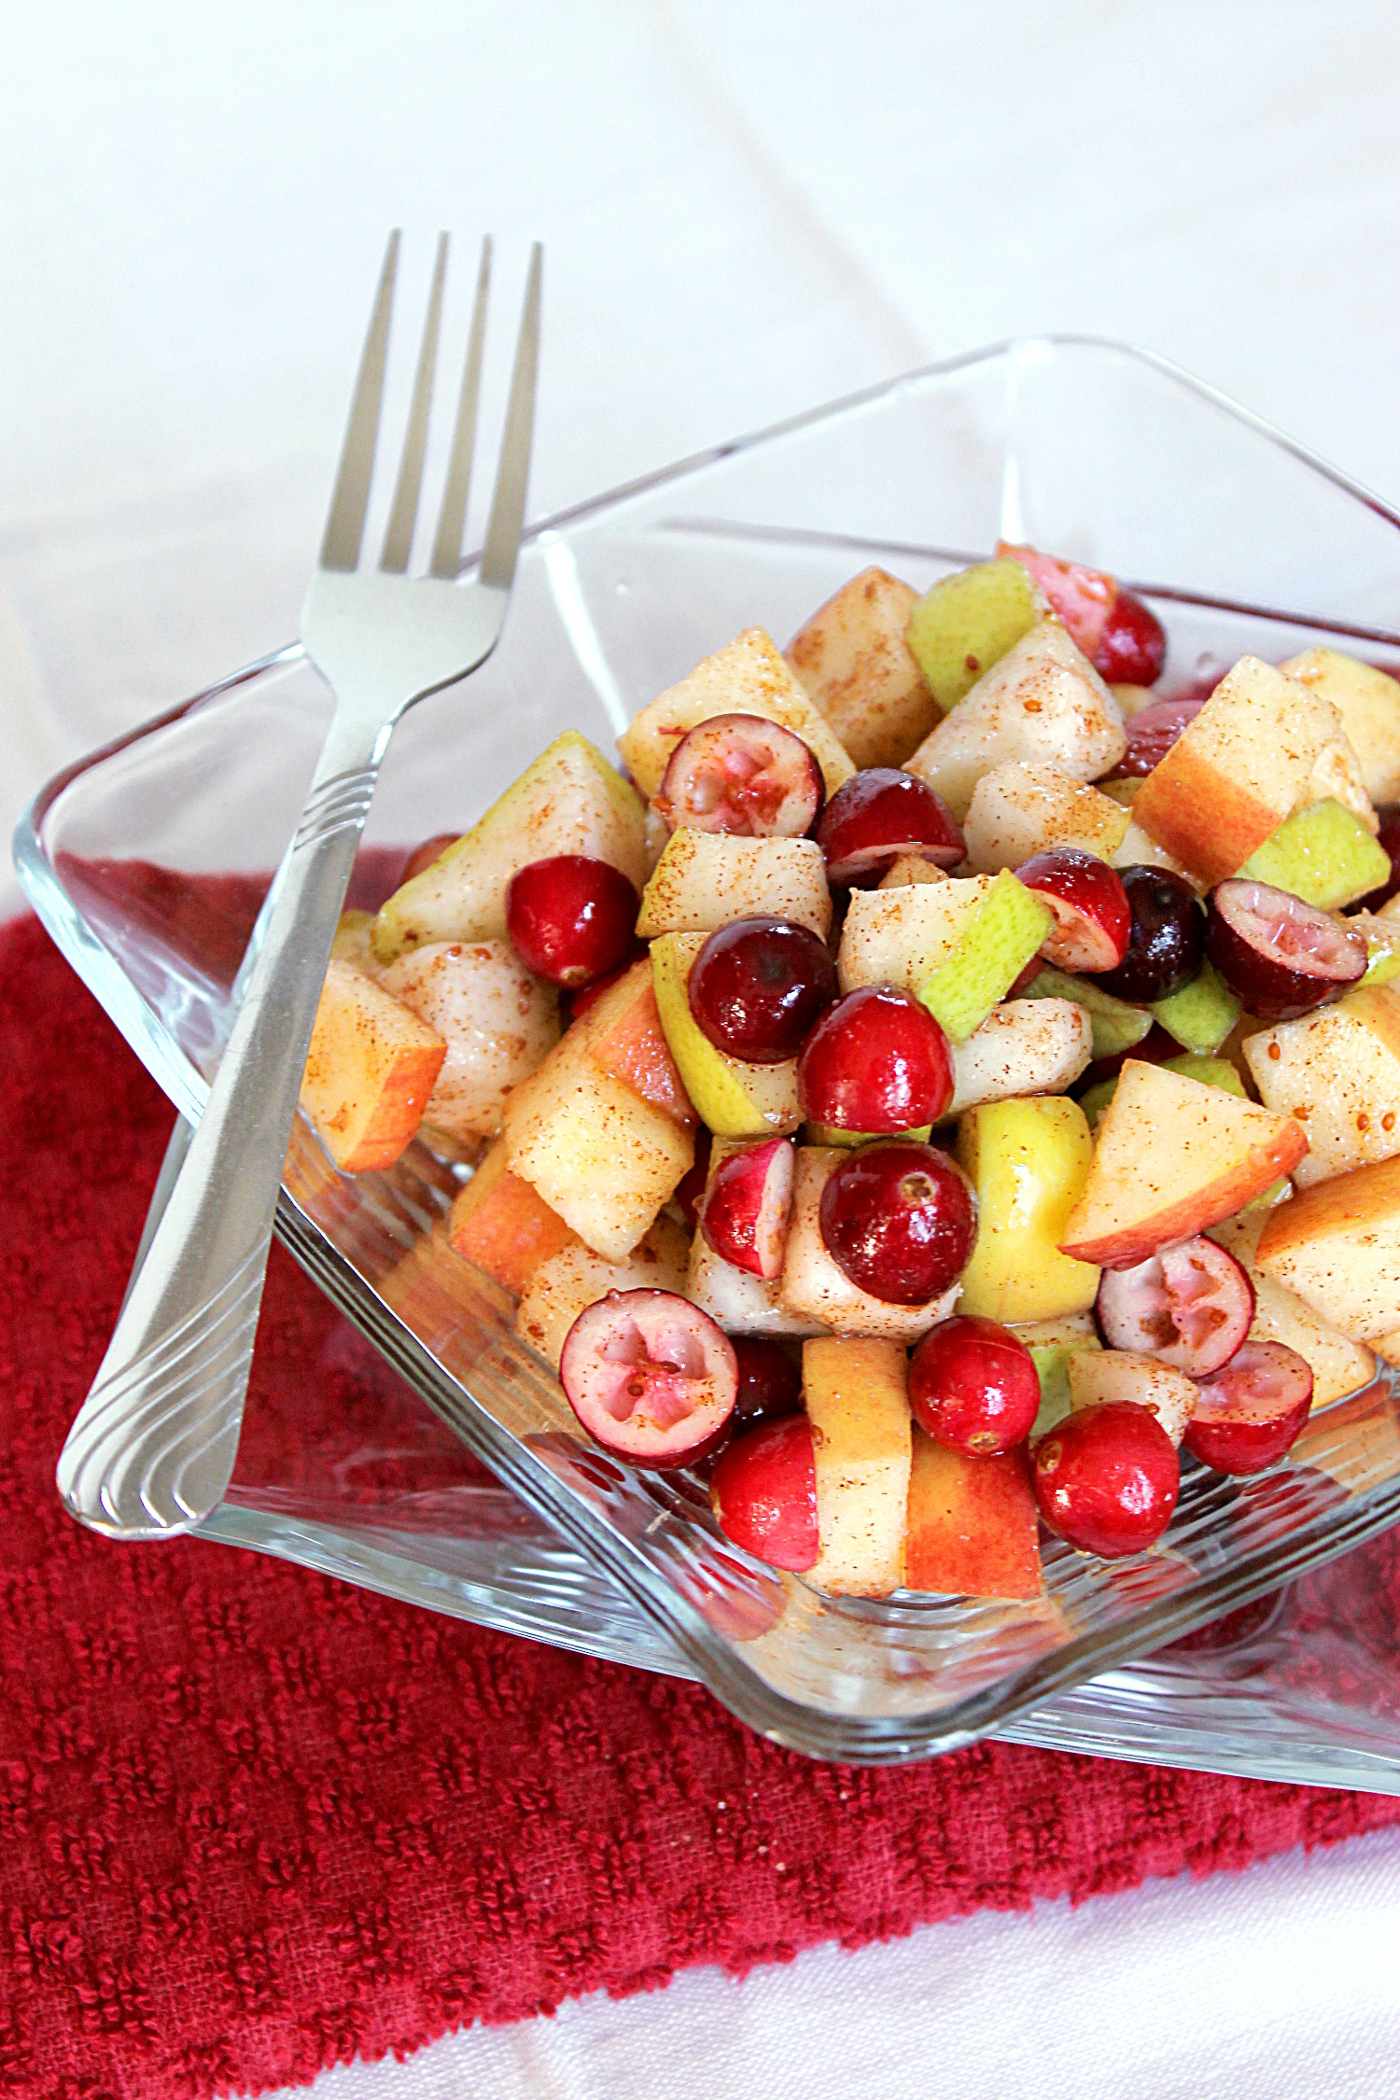 Apple Pear Slaw via Fabtastic Eats #apples #pears #cranberries #slaw #salad #fruit